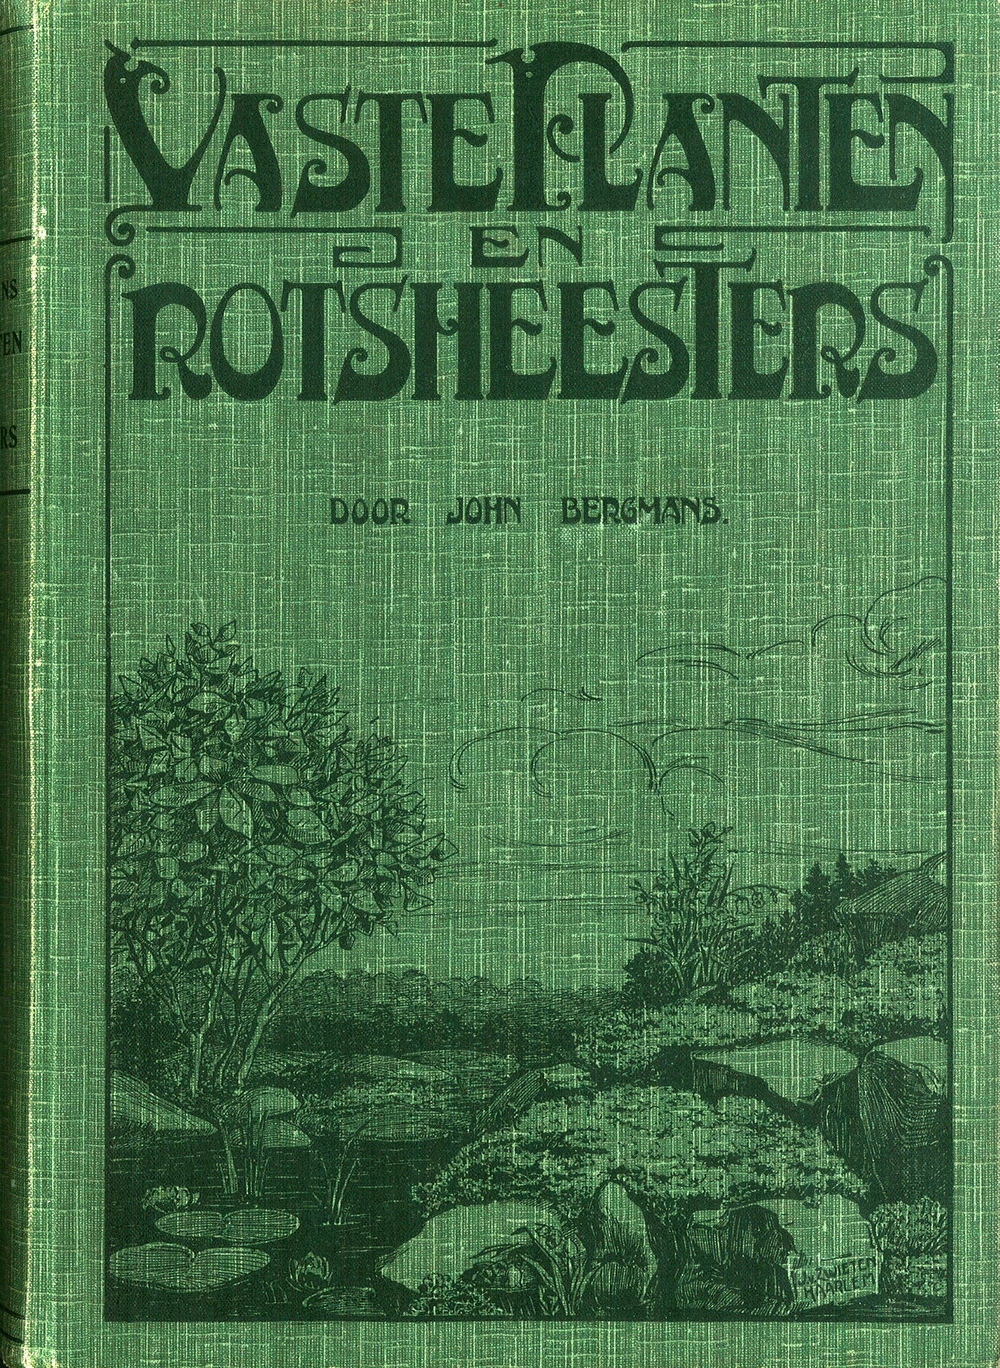 Book cover of Bergmans' most important book Vaste Planten en Rotsheesters, Haarlem, 1924